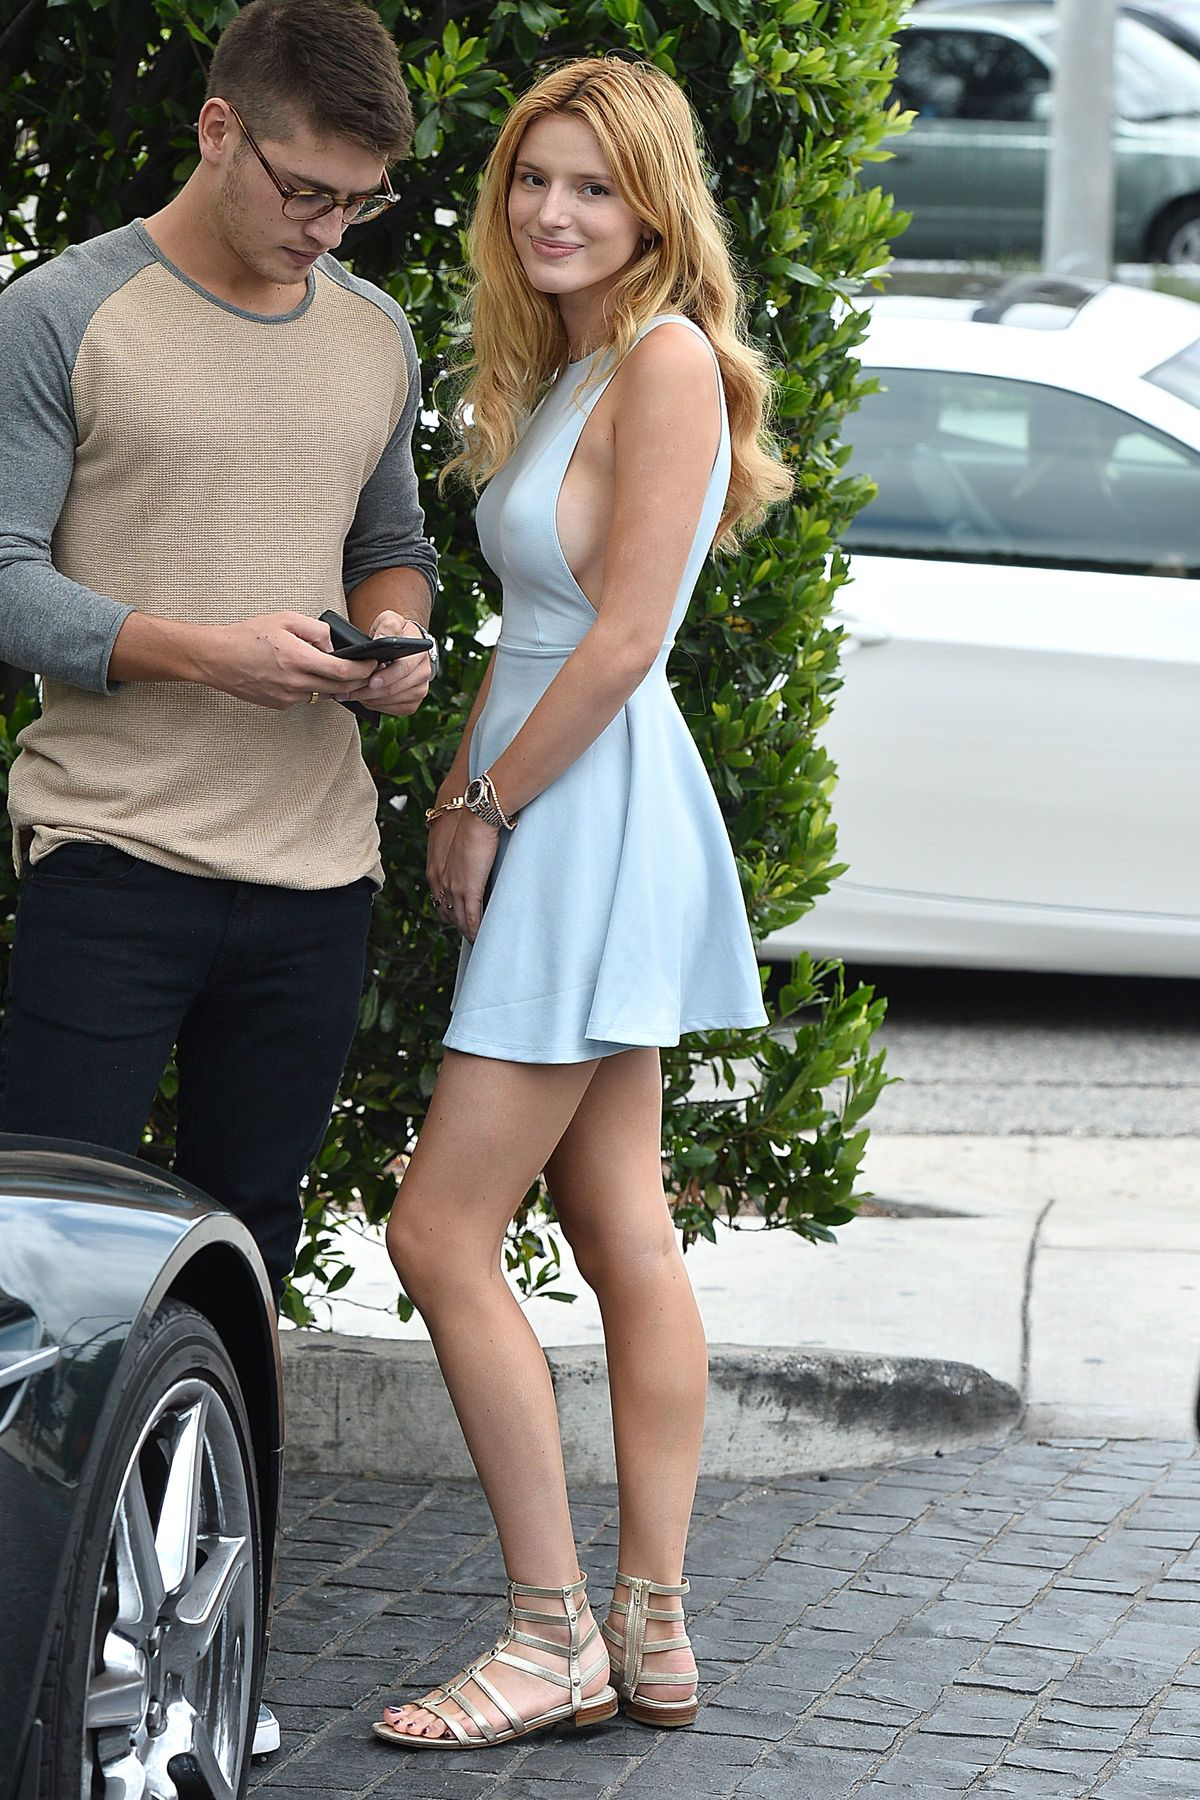 Bella Thorne Braless 19 TheFappening.nu